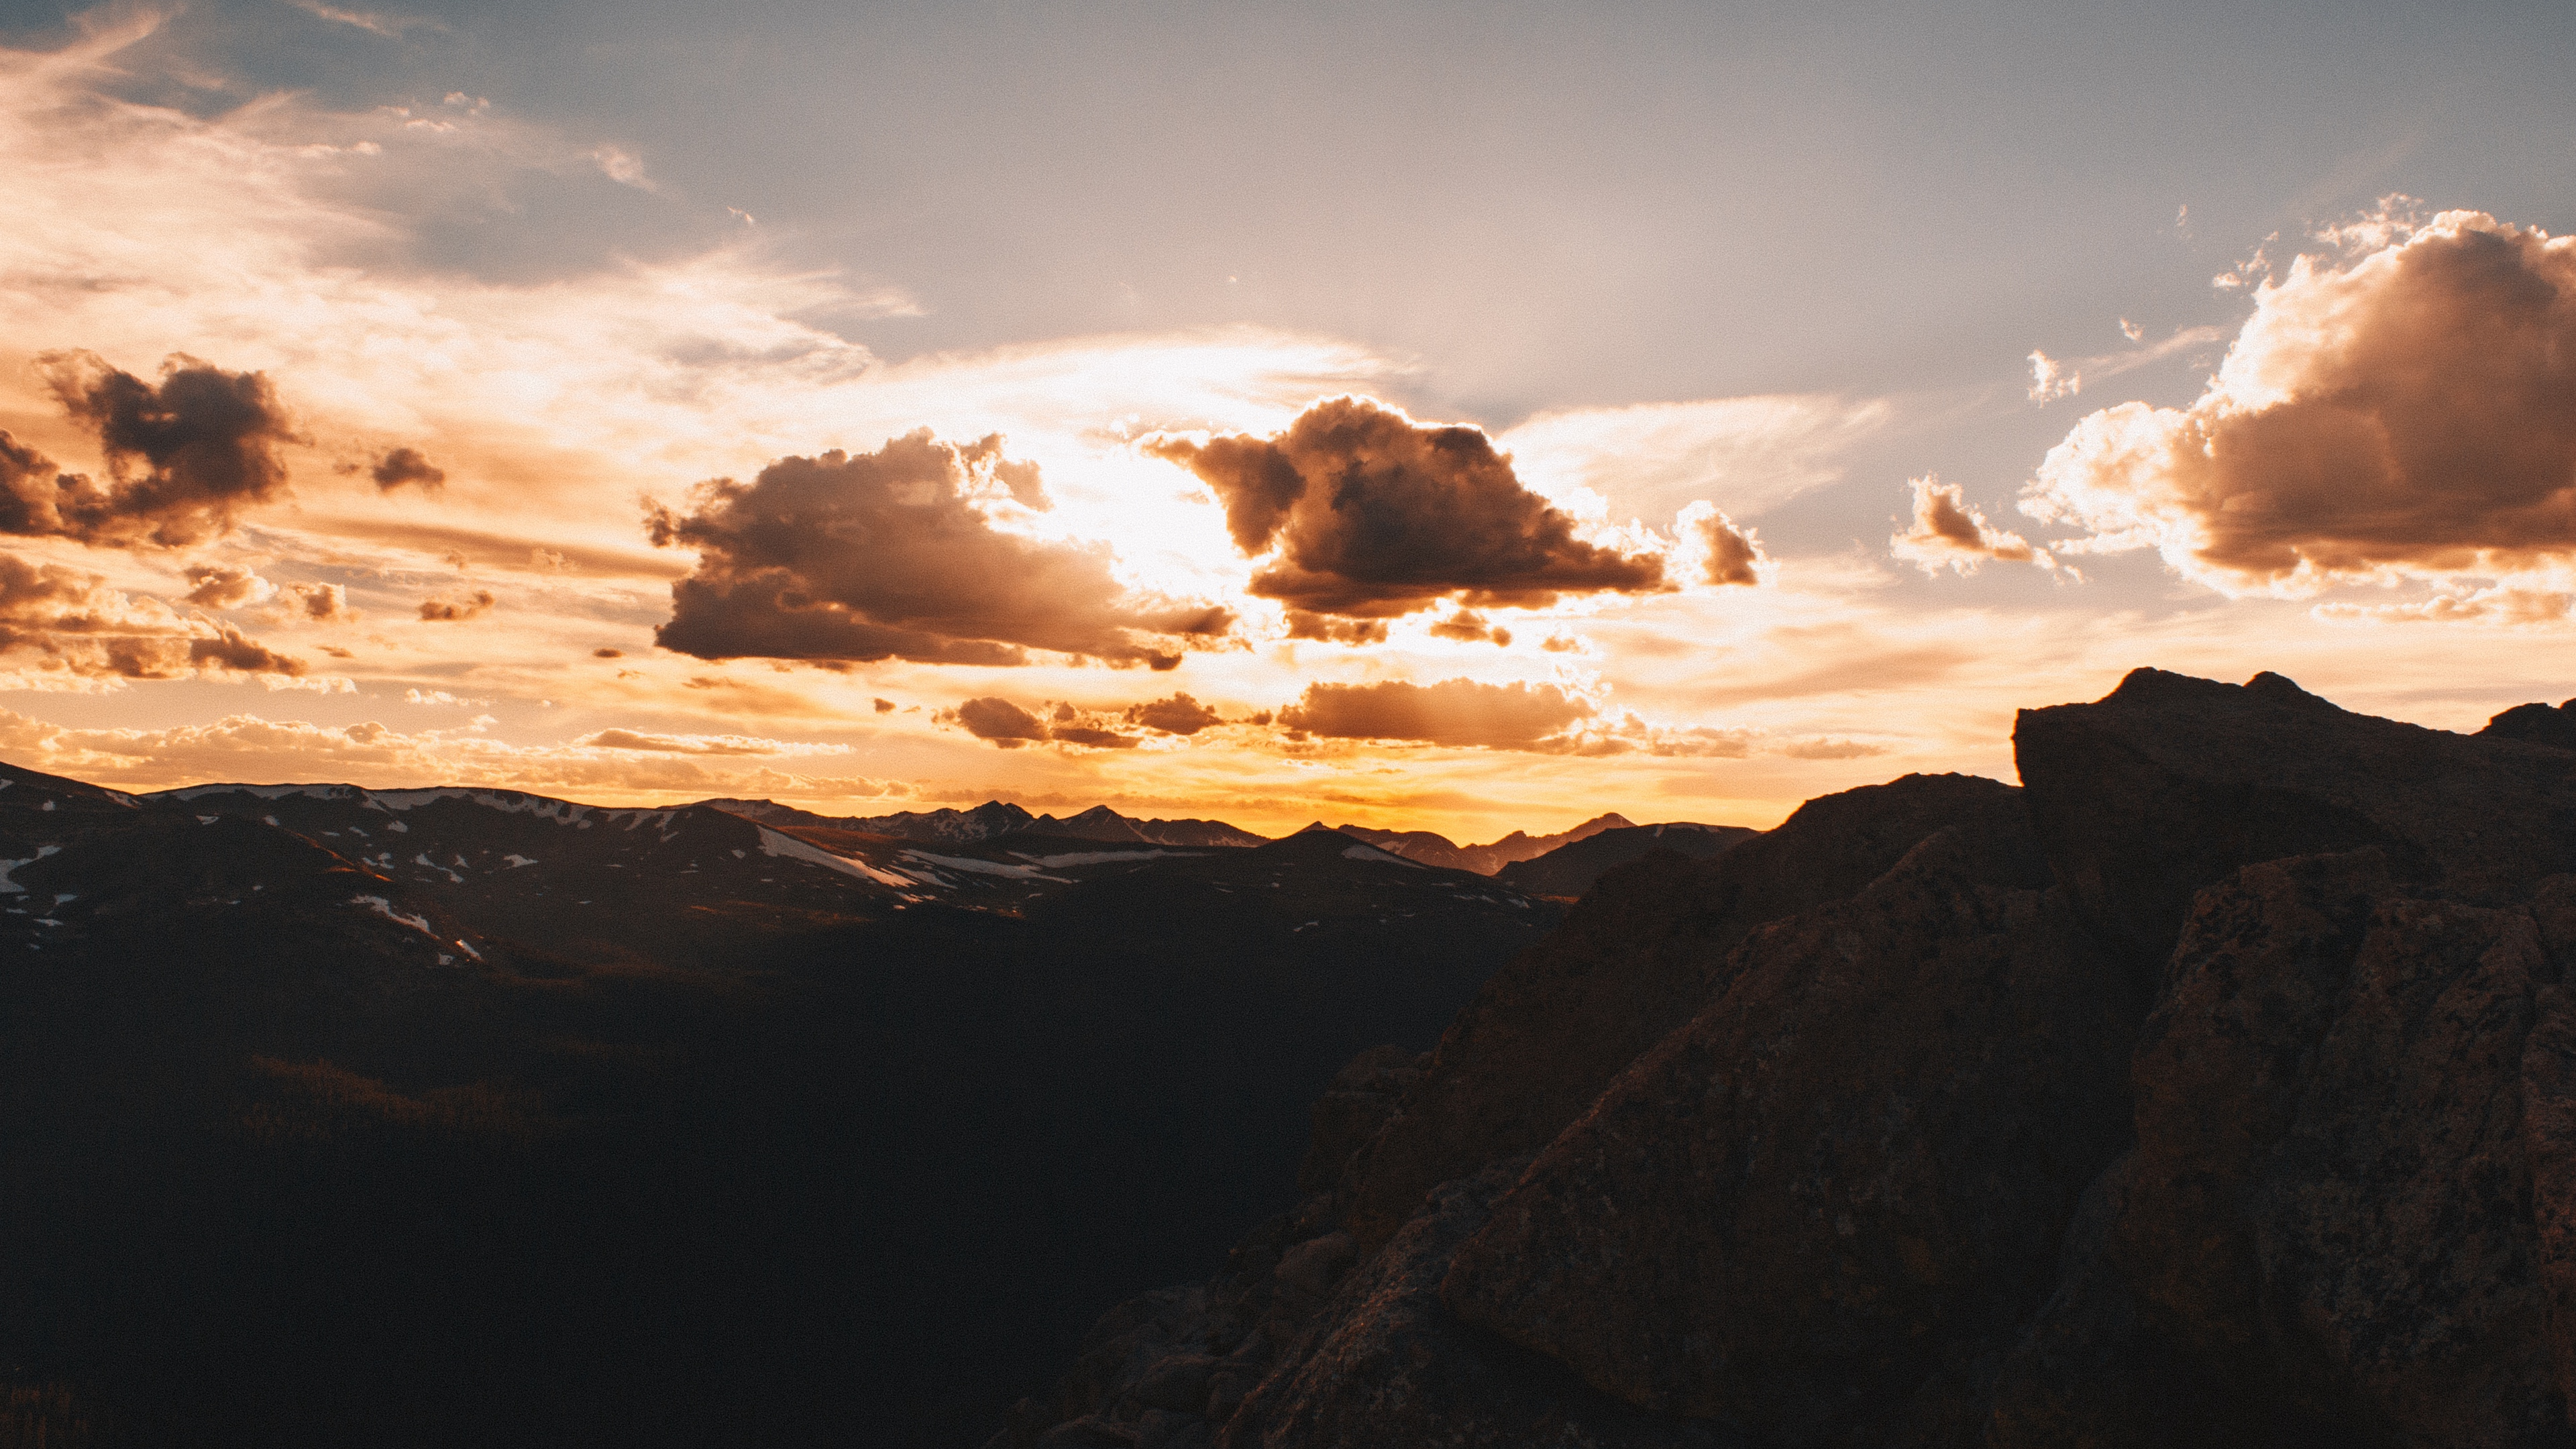 mountains clouds sky sunset 4k 1541115010 - mountains, clouds, sky, sunset 4k - Sky, Mountains, Clouds